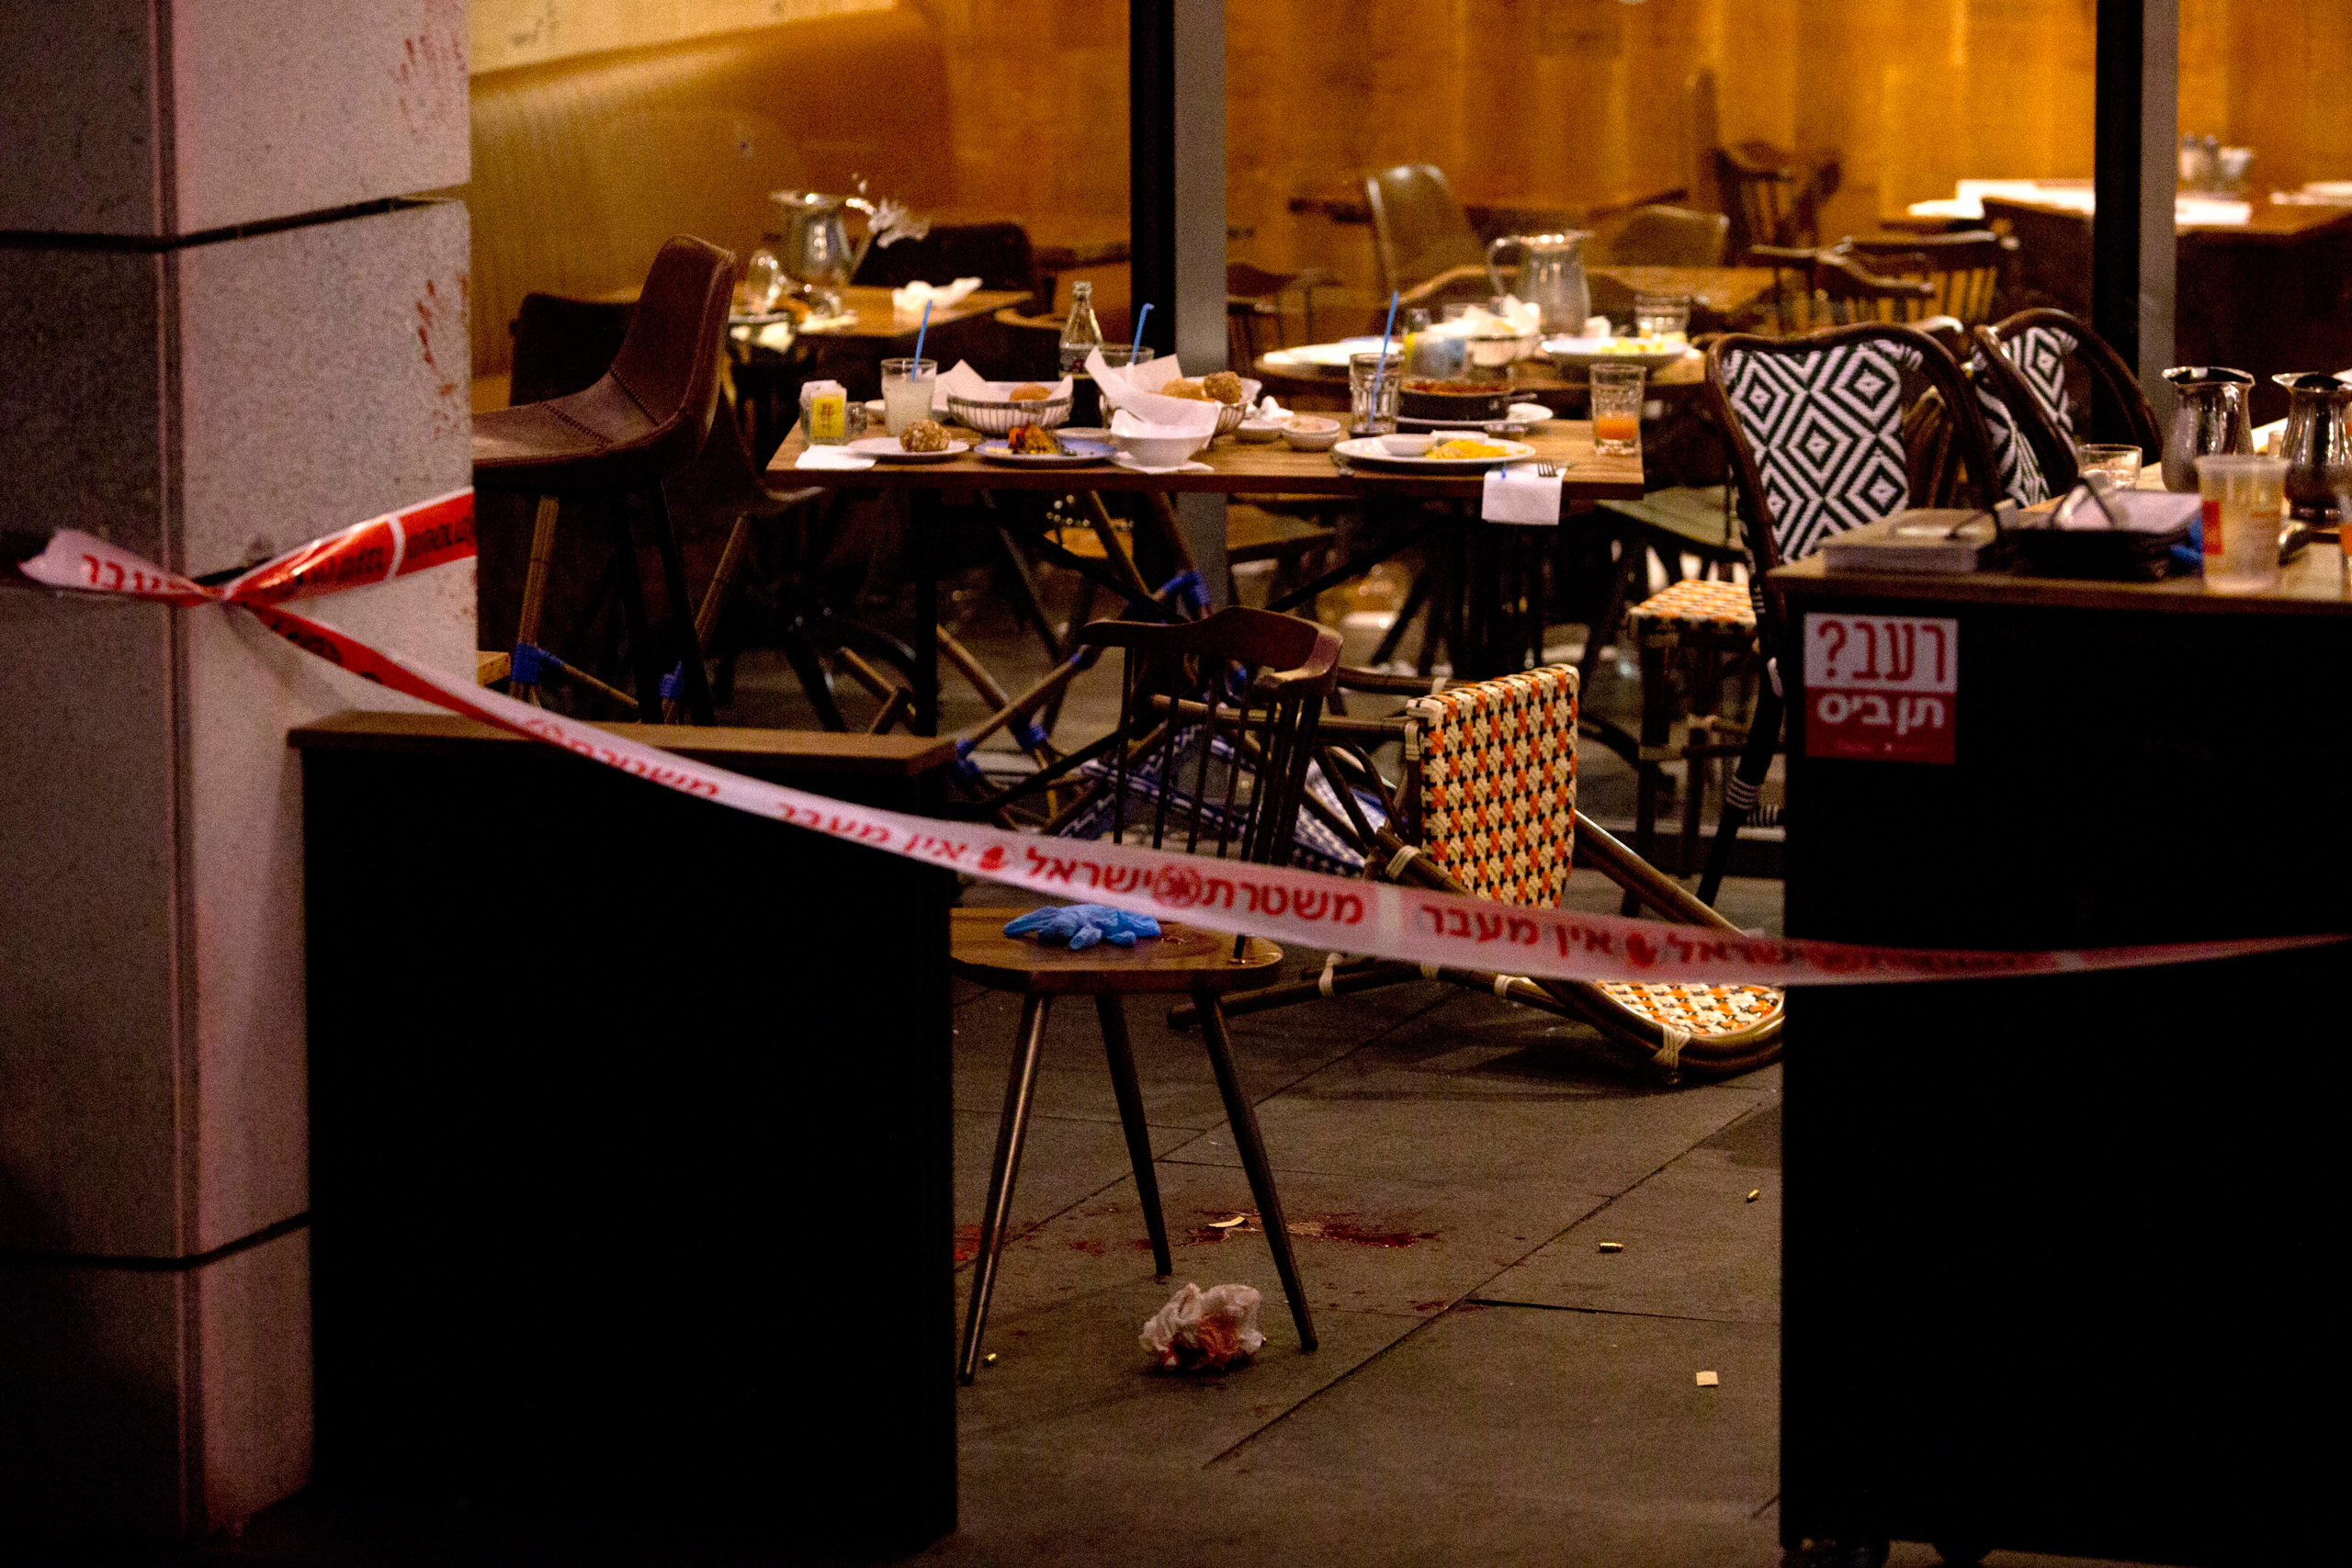 The scene of a shooting attack is seen in Tel Aviv on June 8, 2016